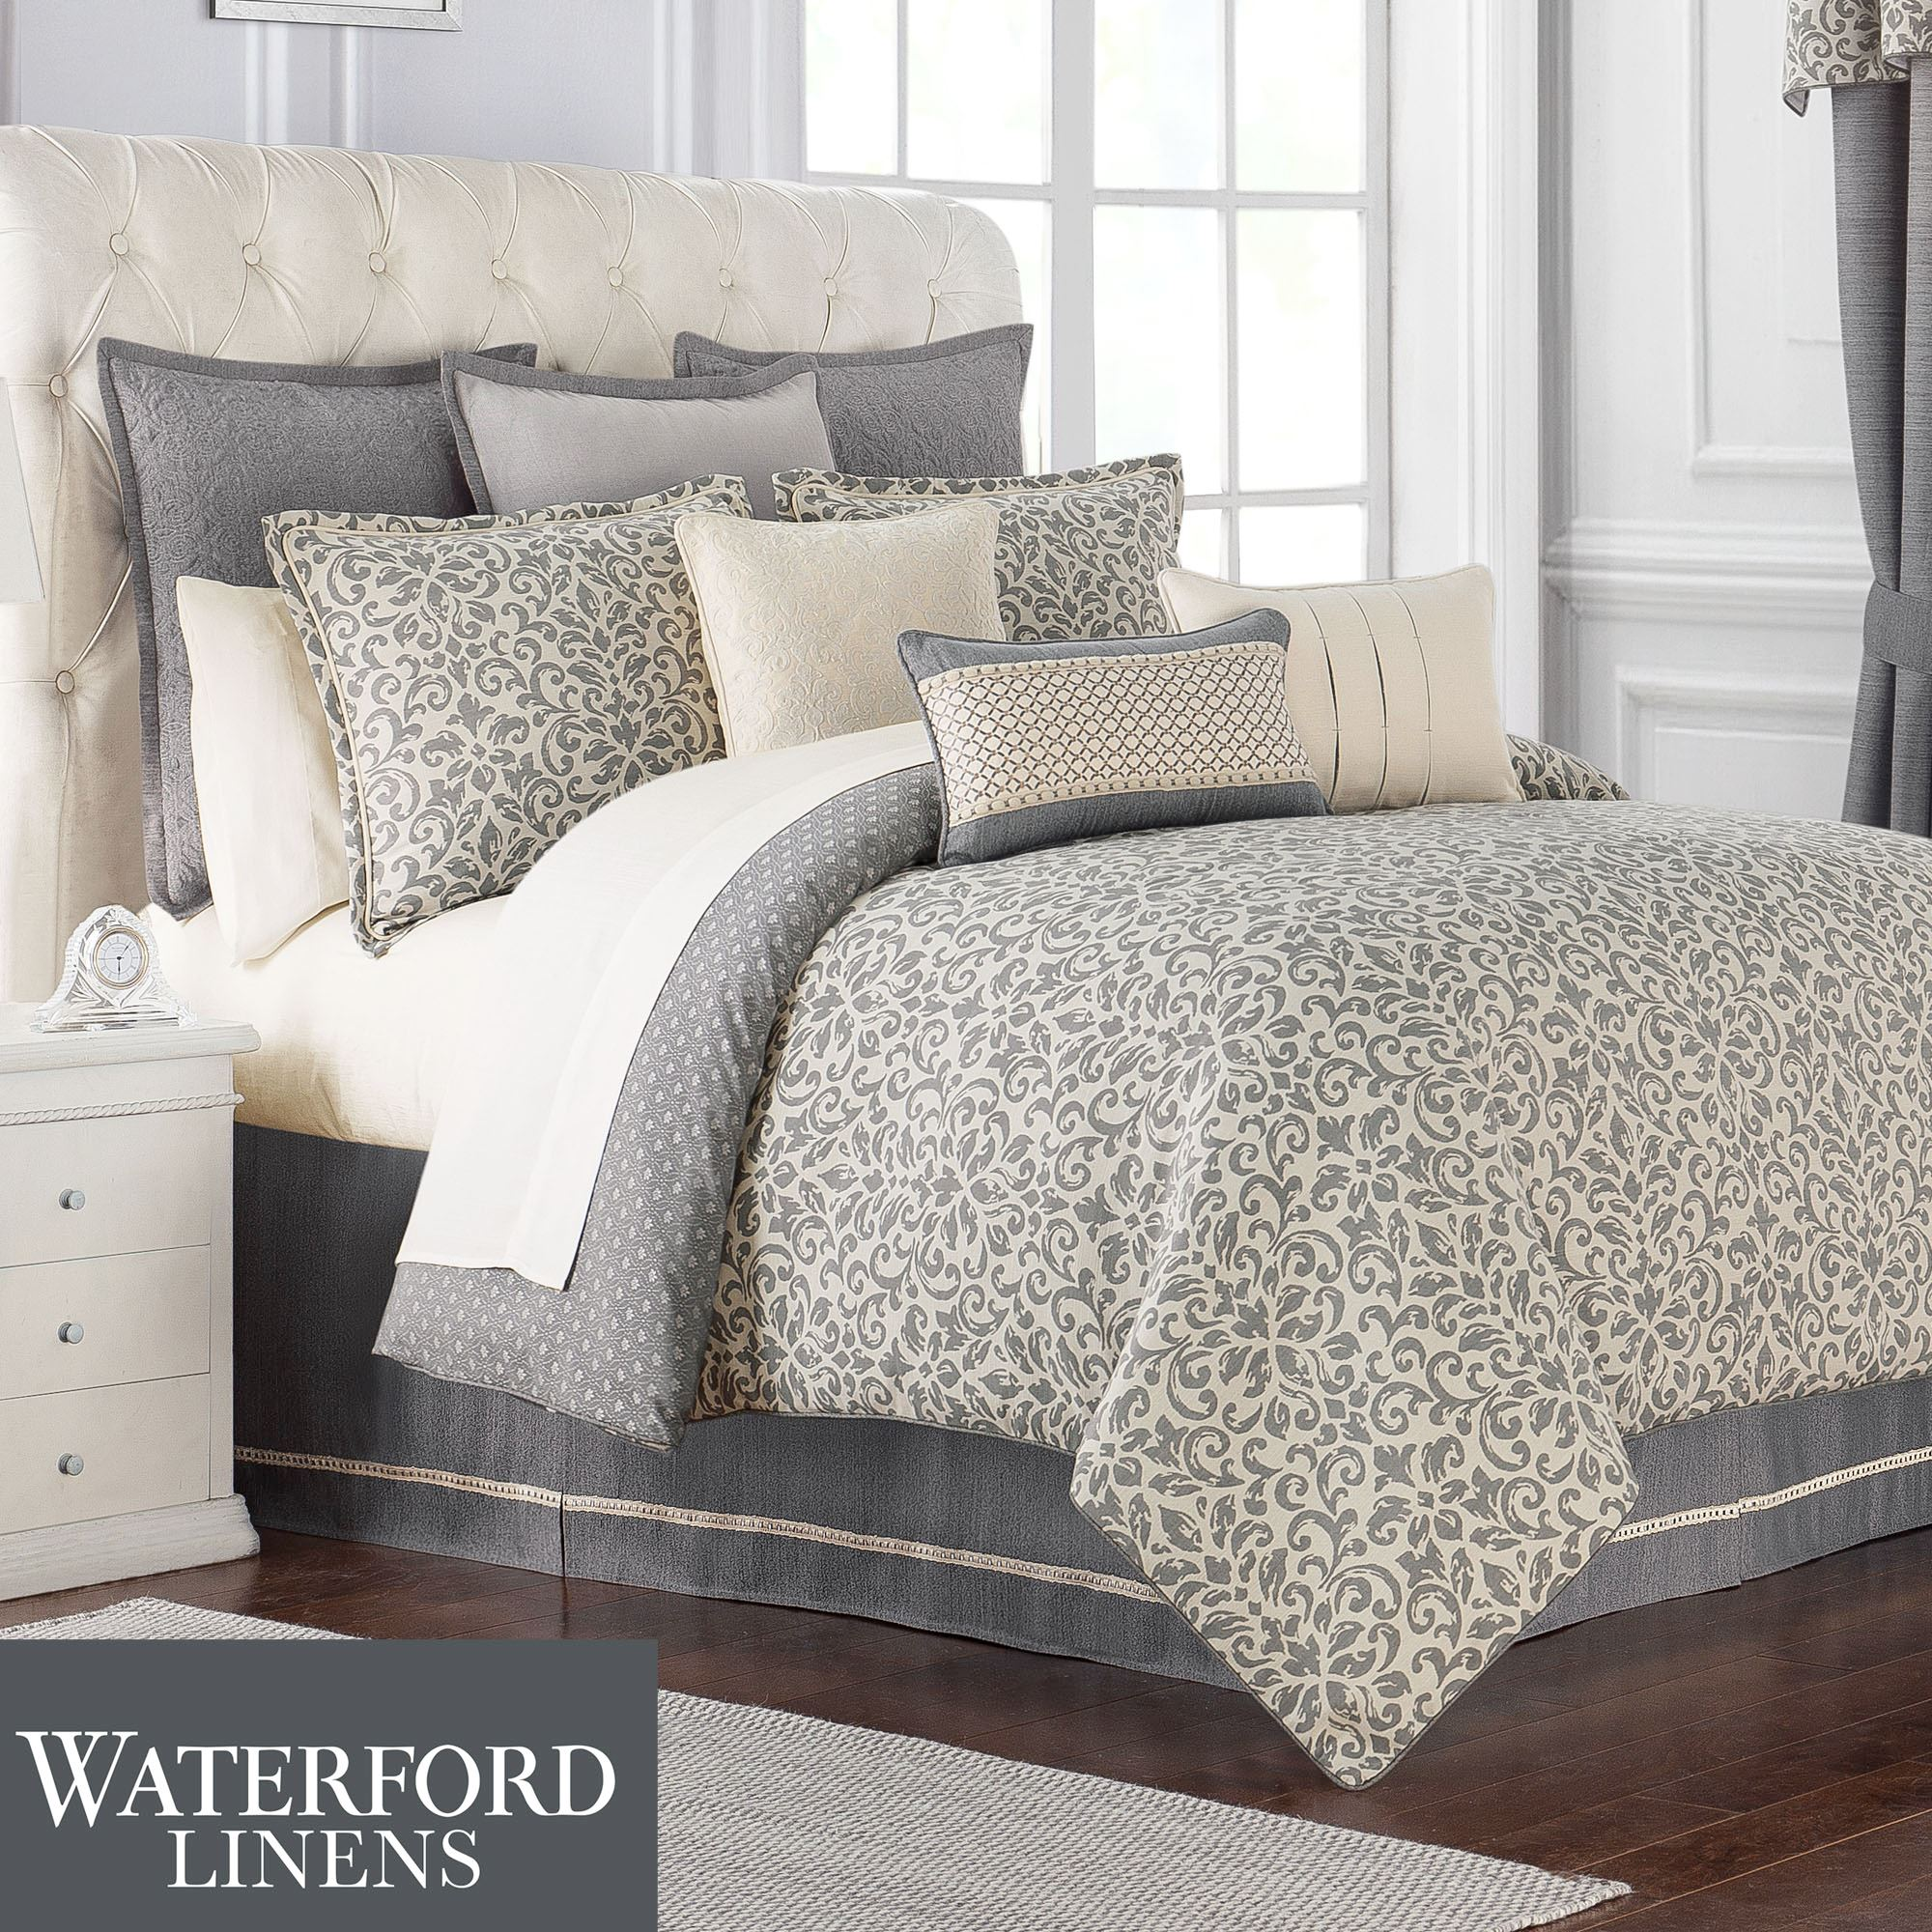 c comforters comforter gray dillards home bedding multi down set zi